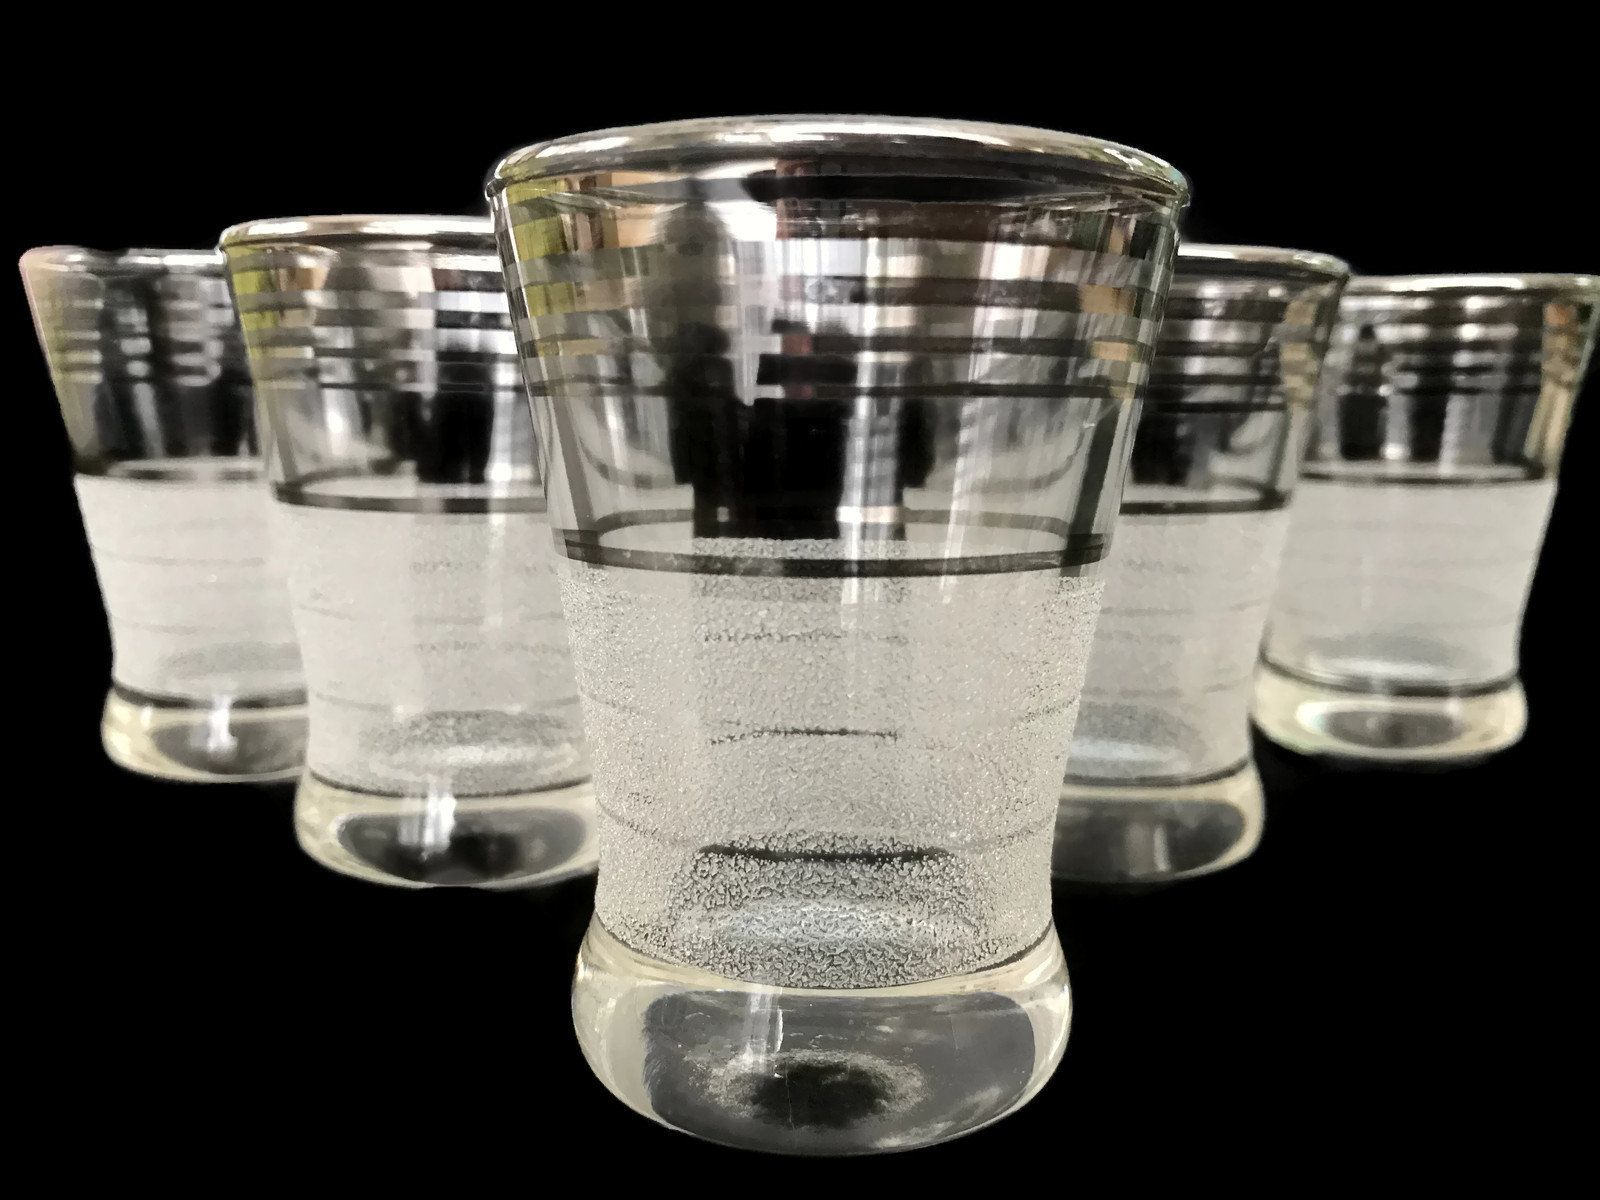 #Vintage Shot Glasses Silver Bands And Frosted Glass Platinum Bands Vintage  Barware Set Of 5